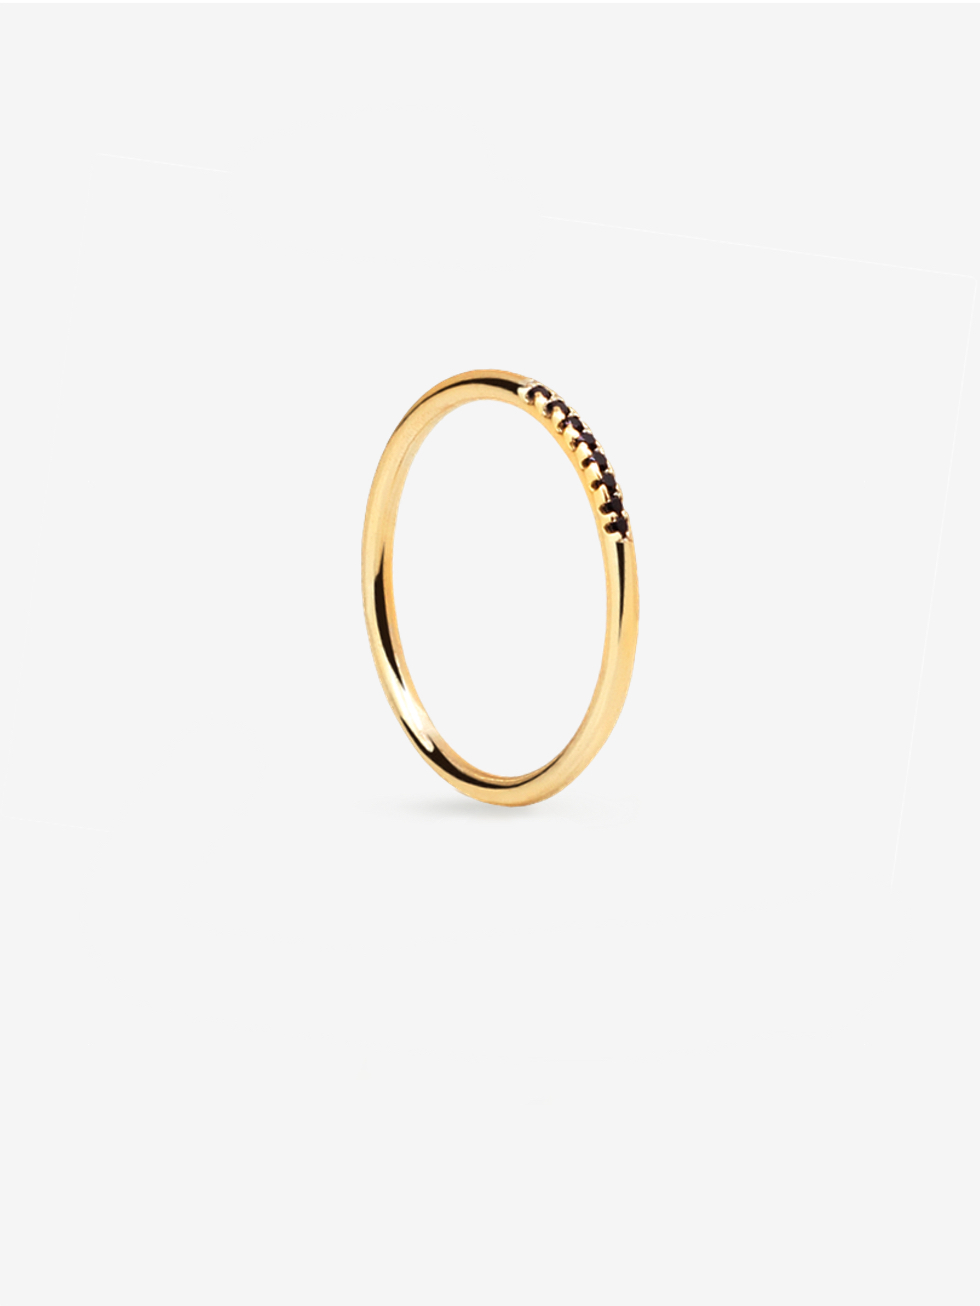 RITZY gold ring